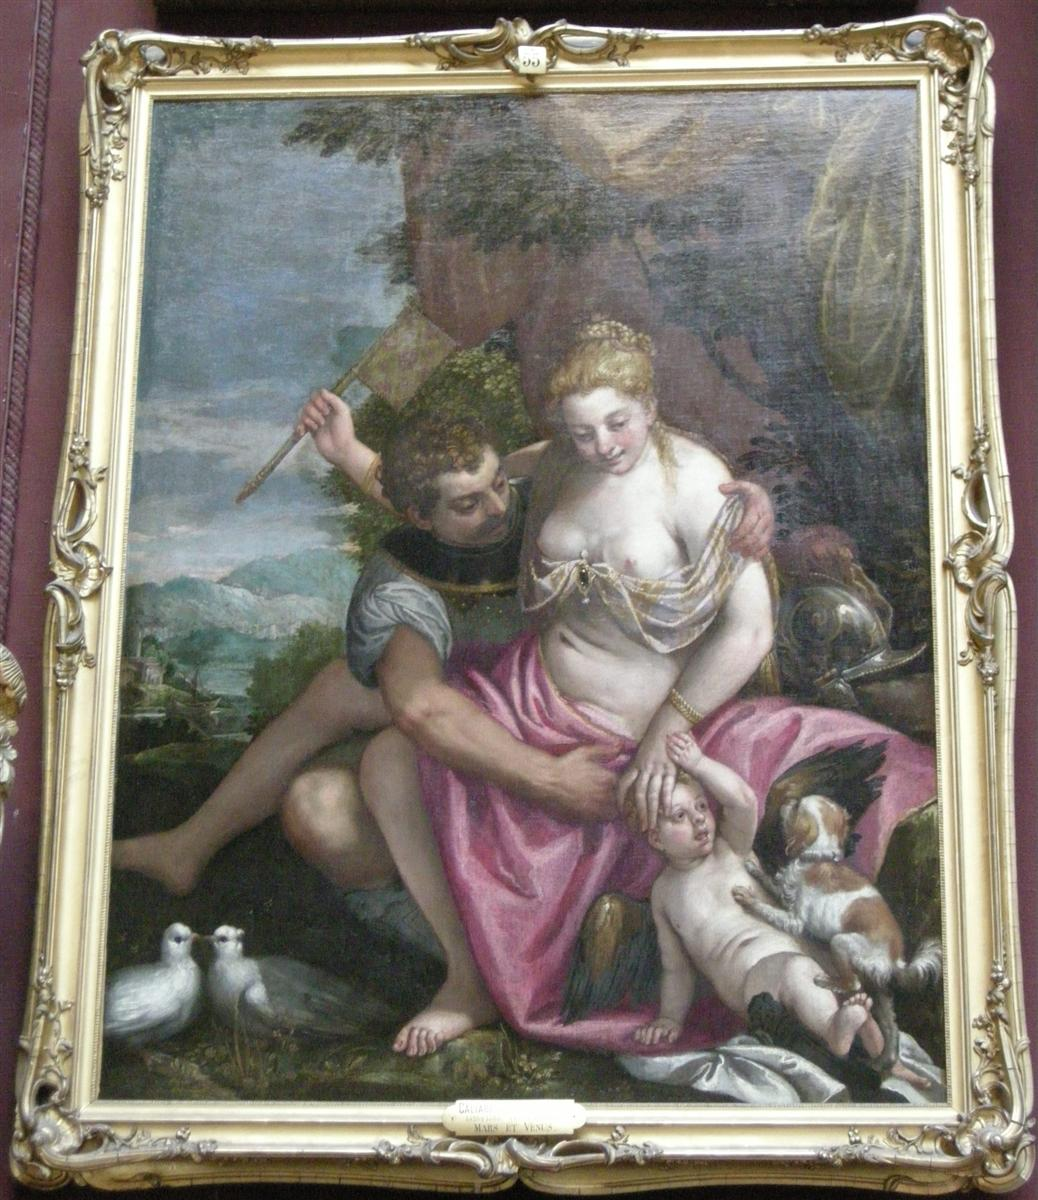 http://uploads8.wikipaintings.org/images/paolo-veronese/mars-and-venus-1.jpg!HD.jpg